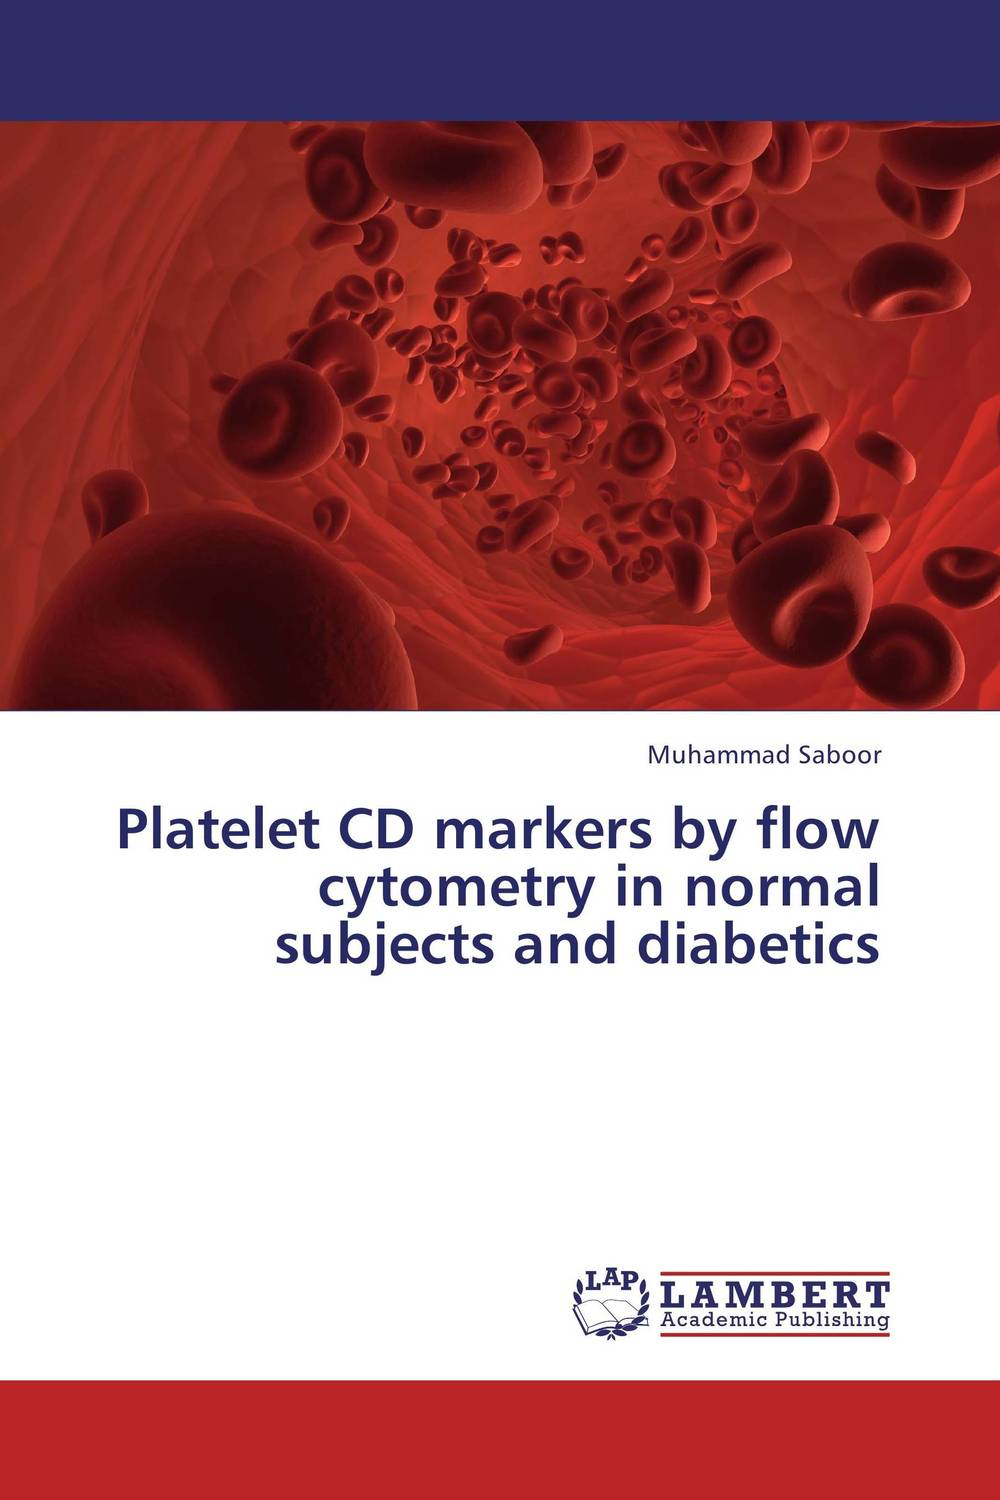 Platelet CD markers by flow cytometry in normal subjects and diabetics